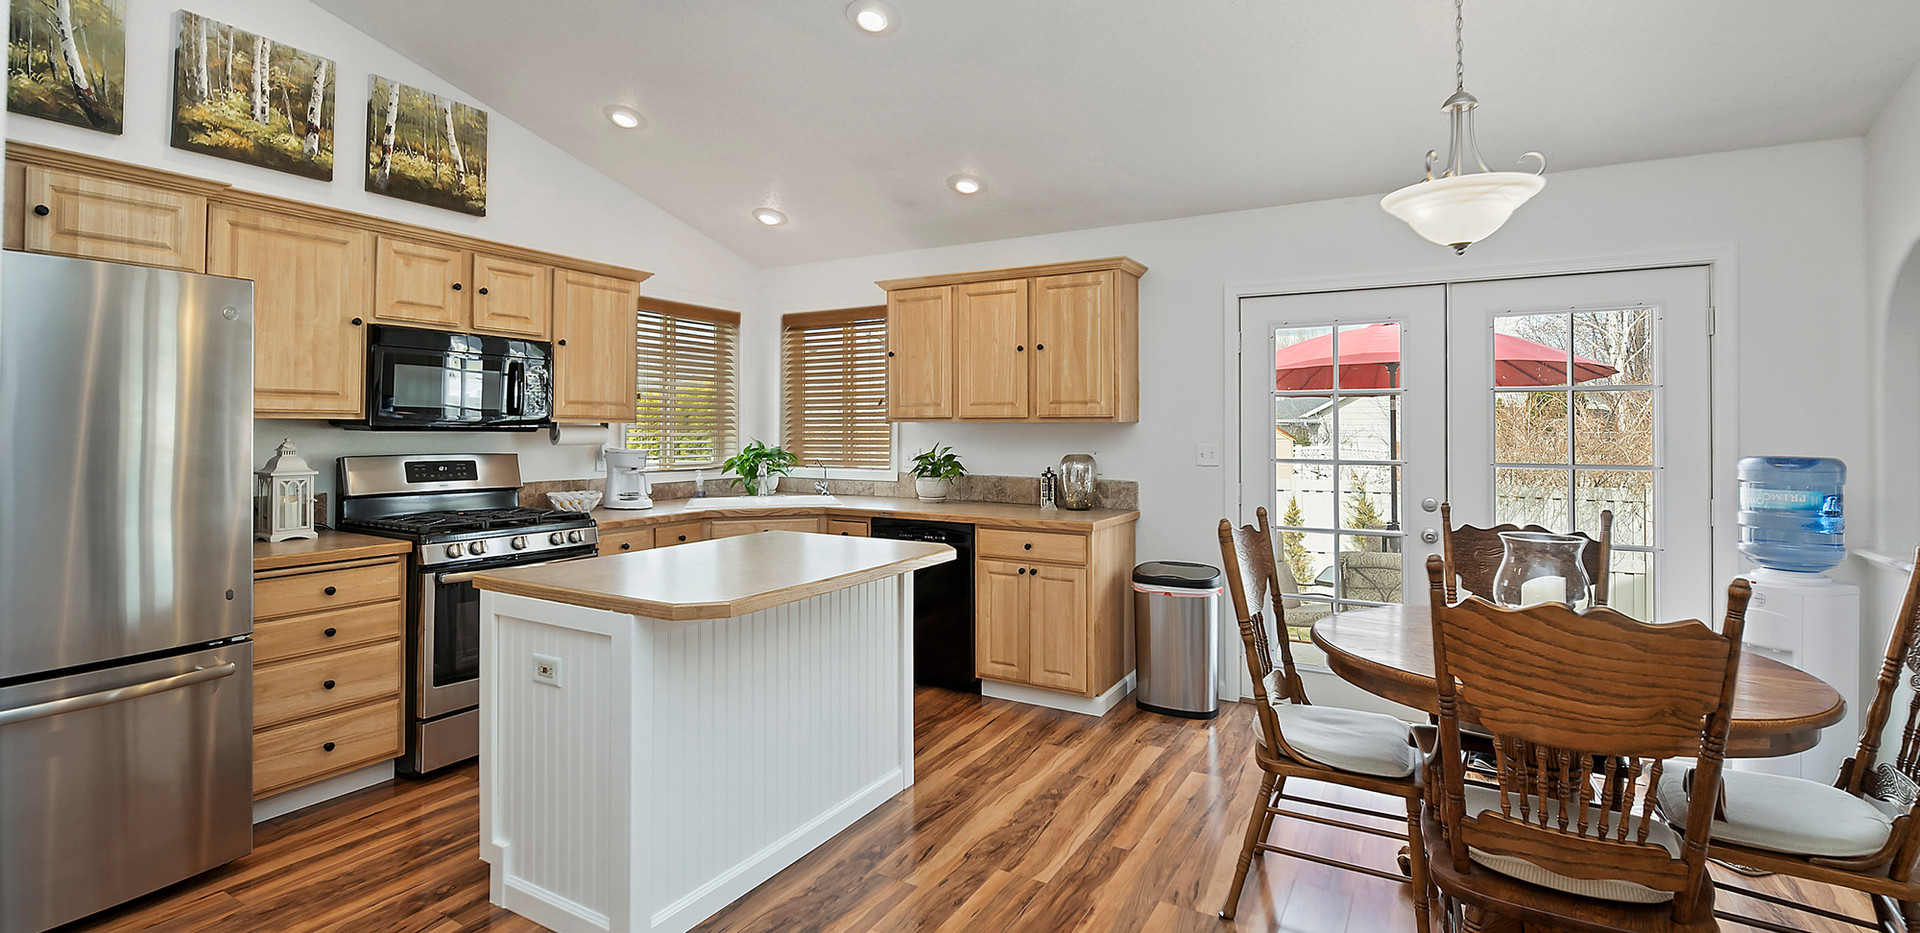 009_Kitchen and Dining Area View.jpg